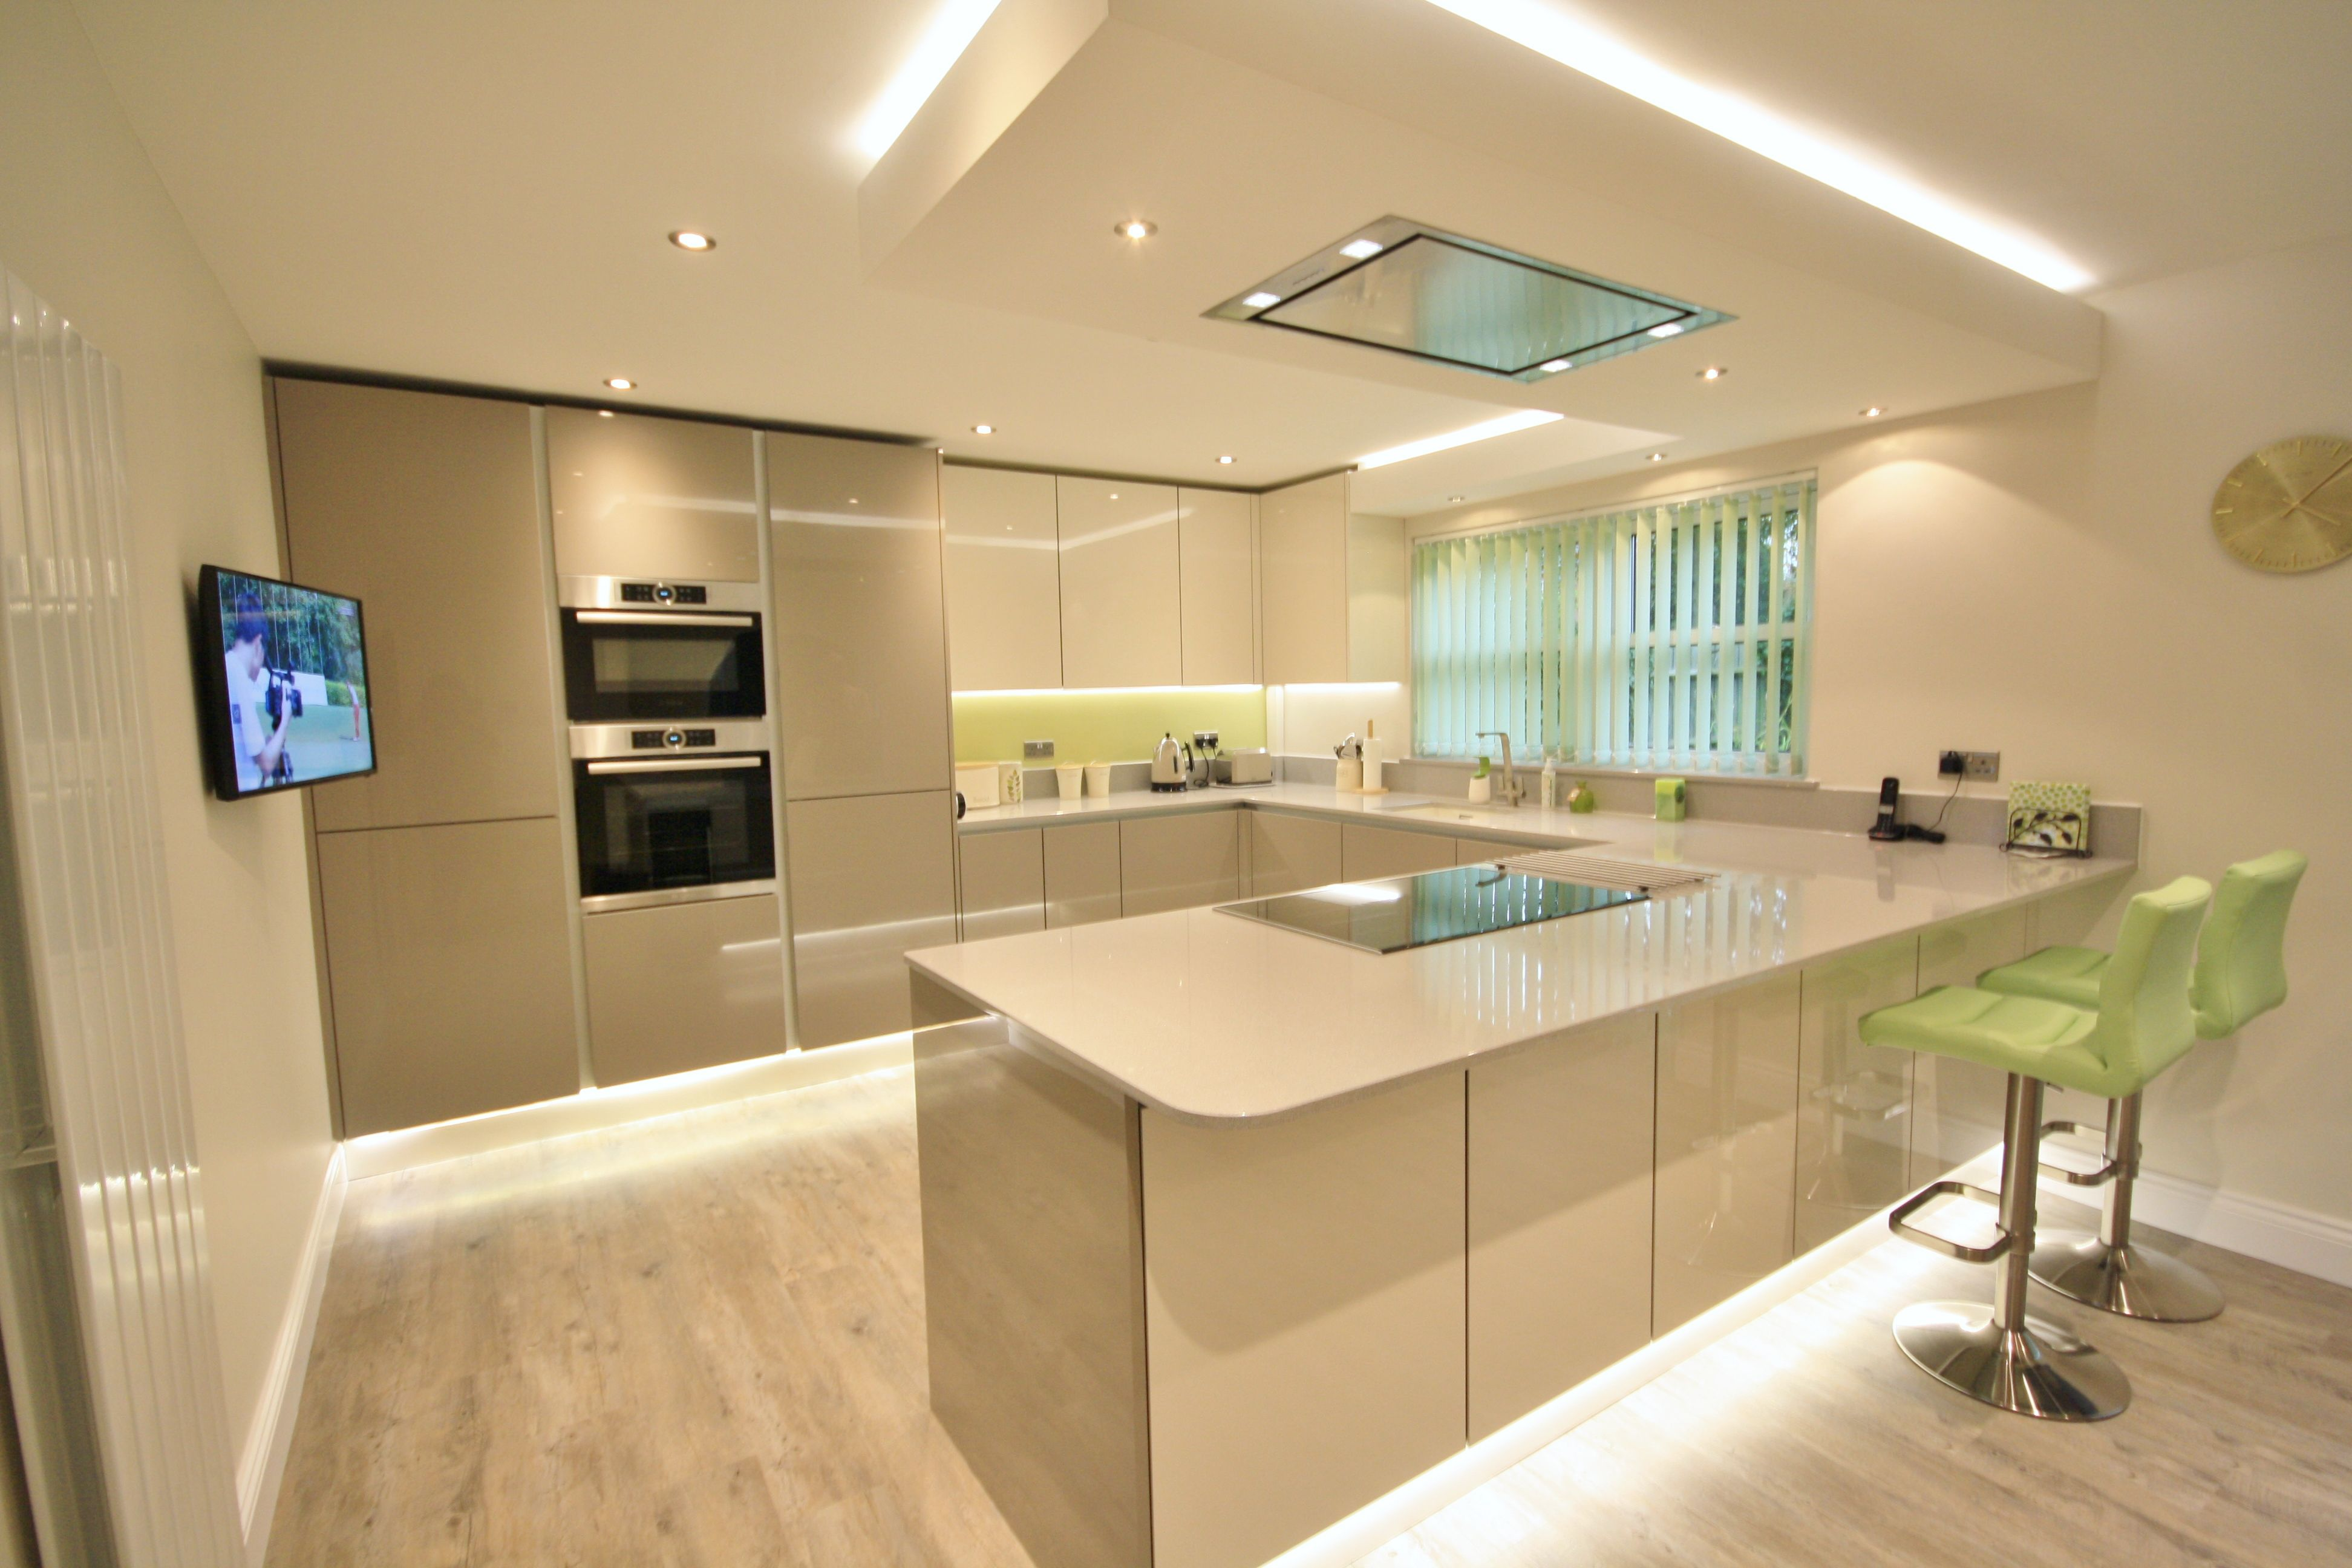 Eye level ovens integrated in the tall units creates more storage